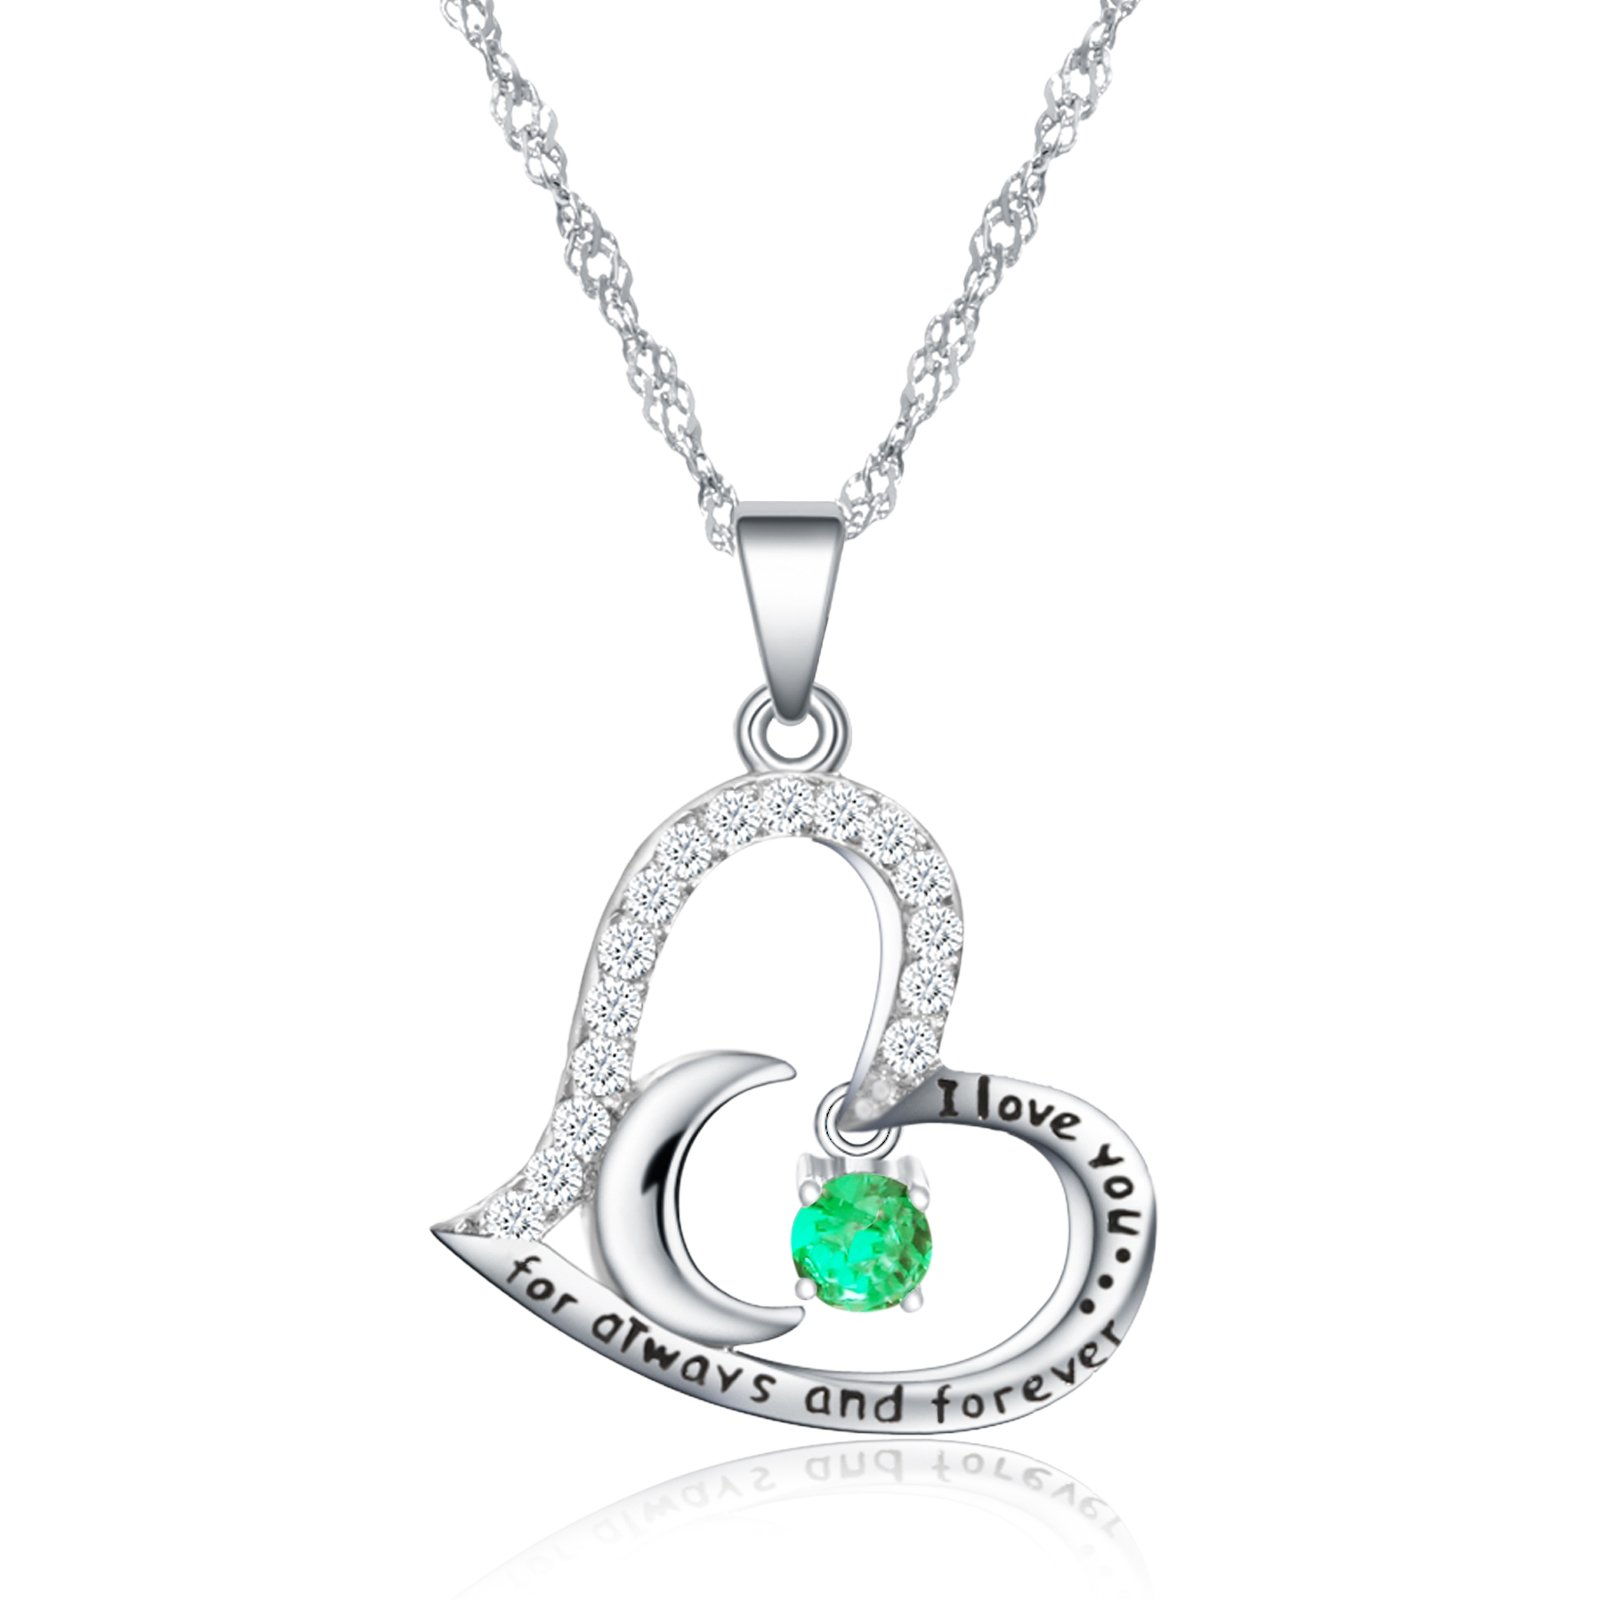 Dancing Birthstone Birthstone Jewelry I Love You For Always and Forever Emerald Pendant Necklace Birthstone Necklace (05-May-Emerald)